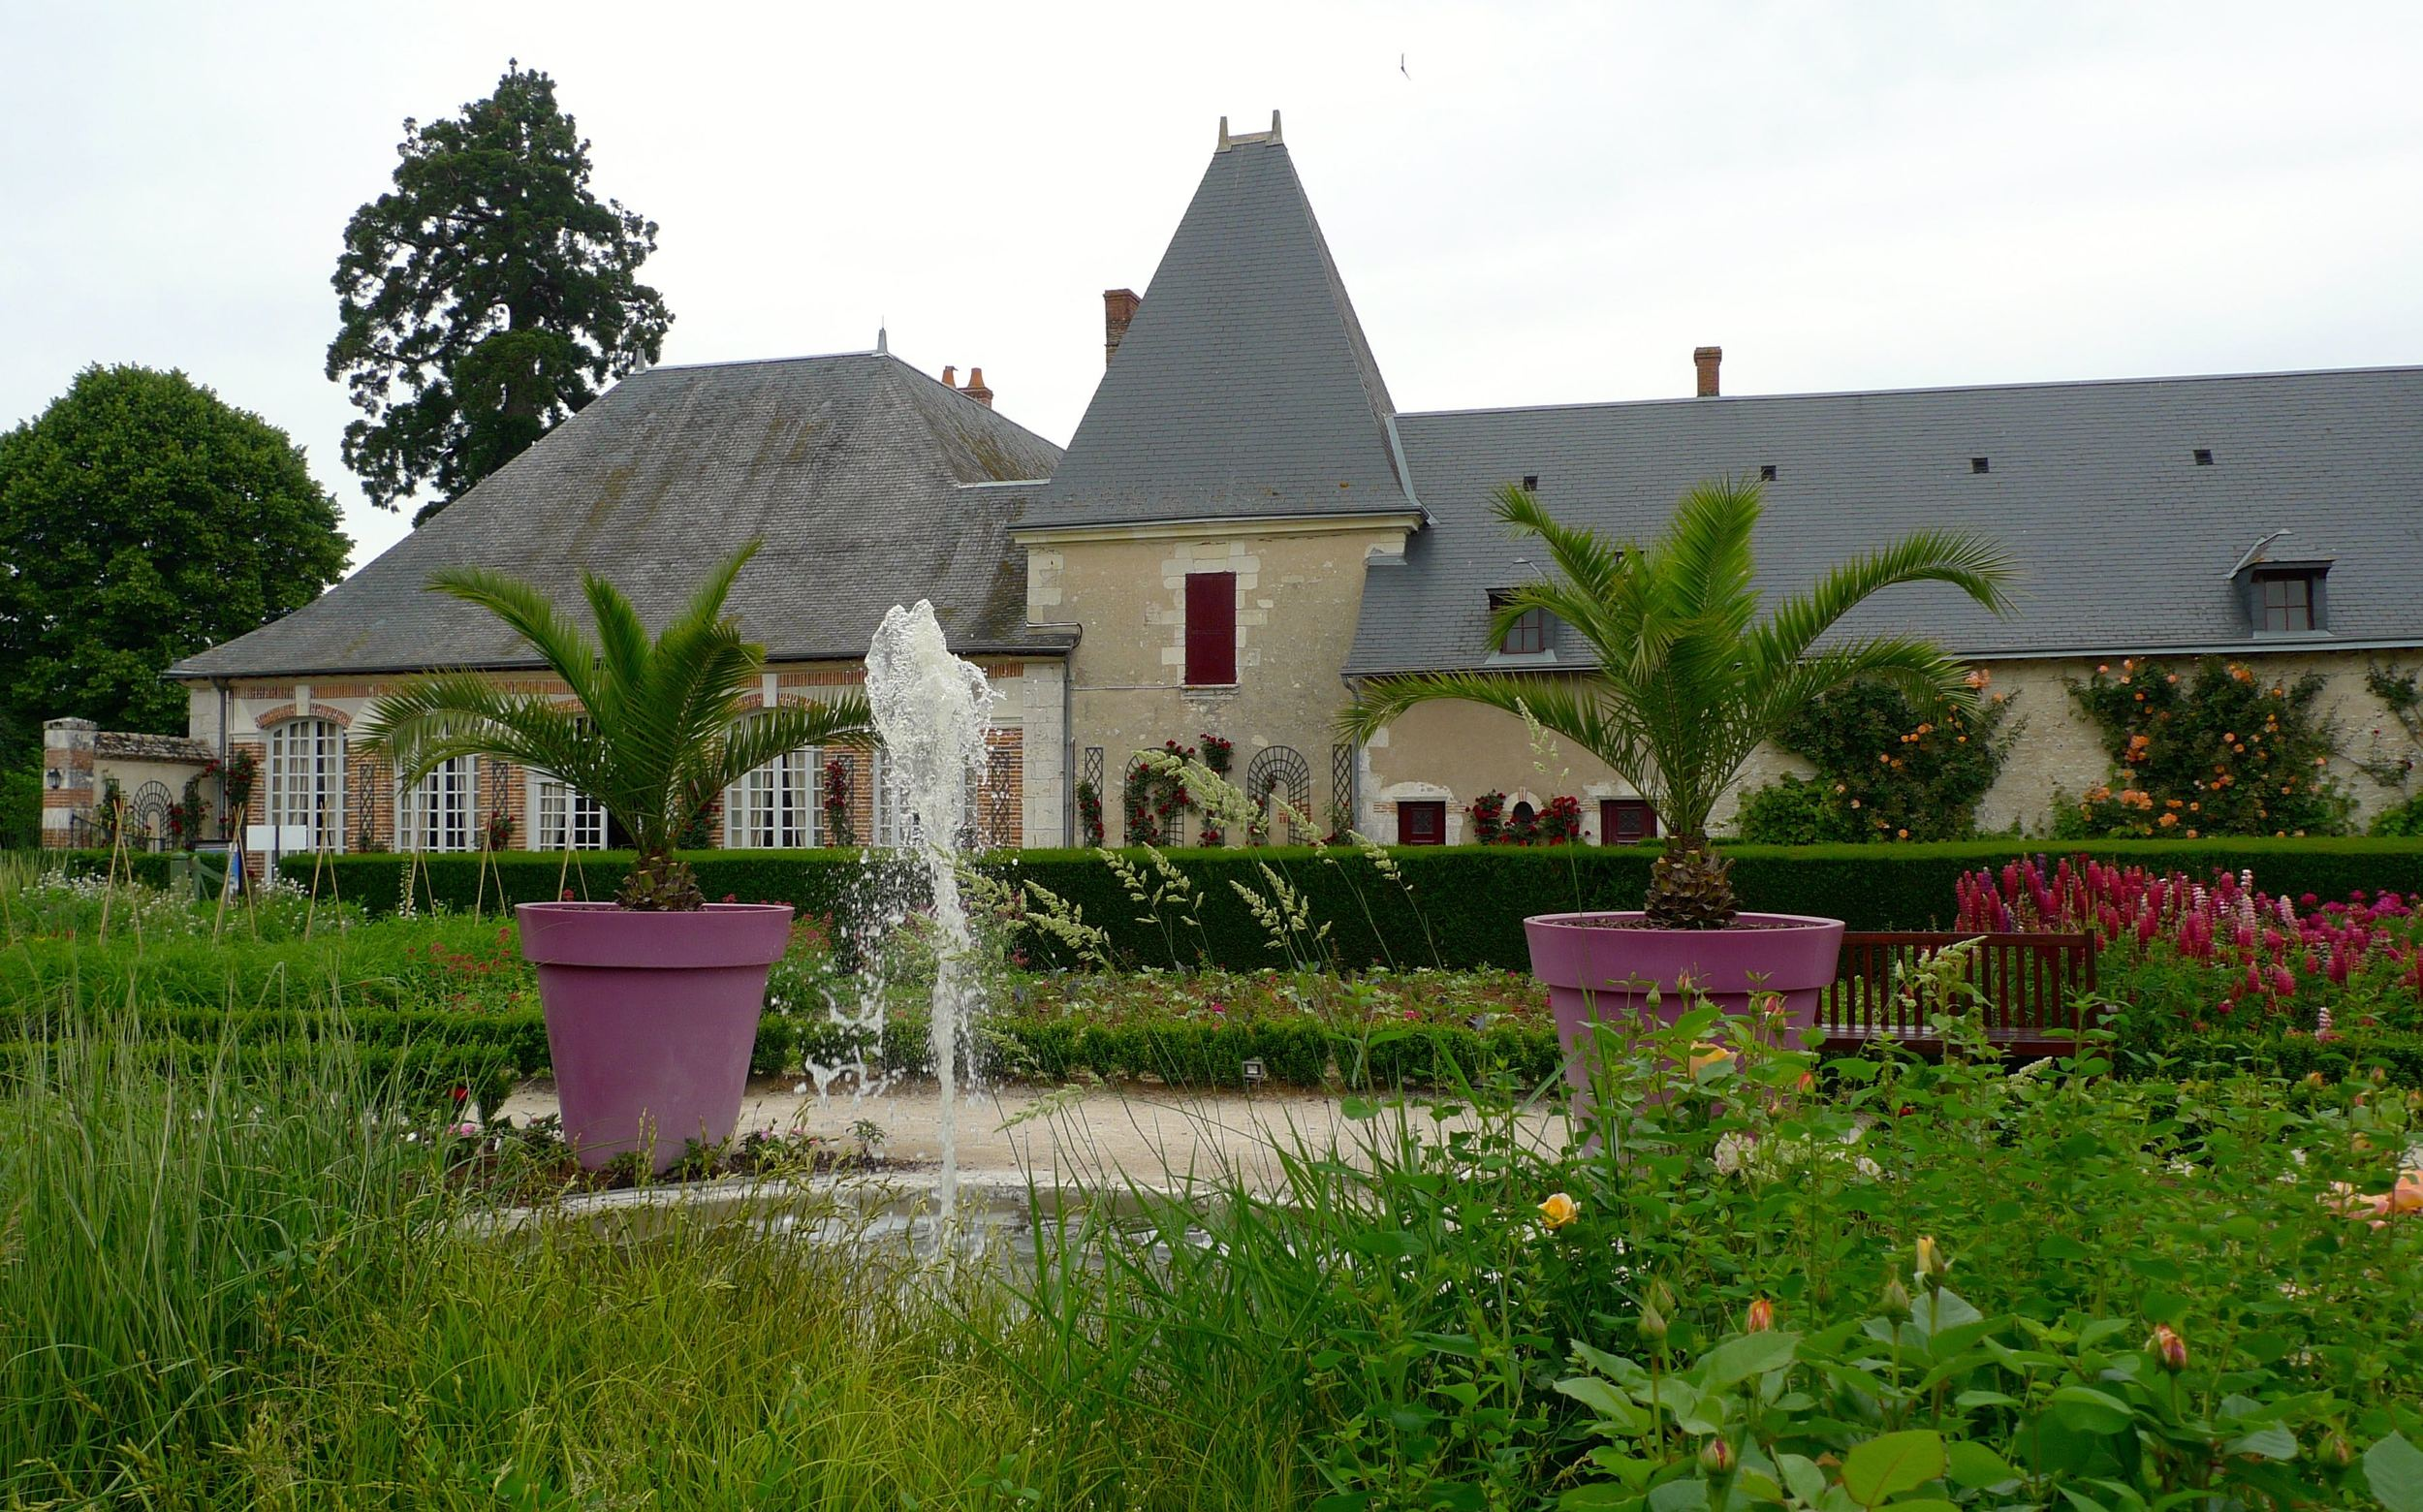 In the Jardin Potager at Cheverny with its large pink flower pots and fountain